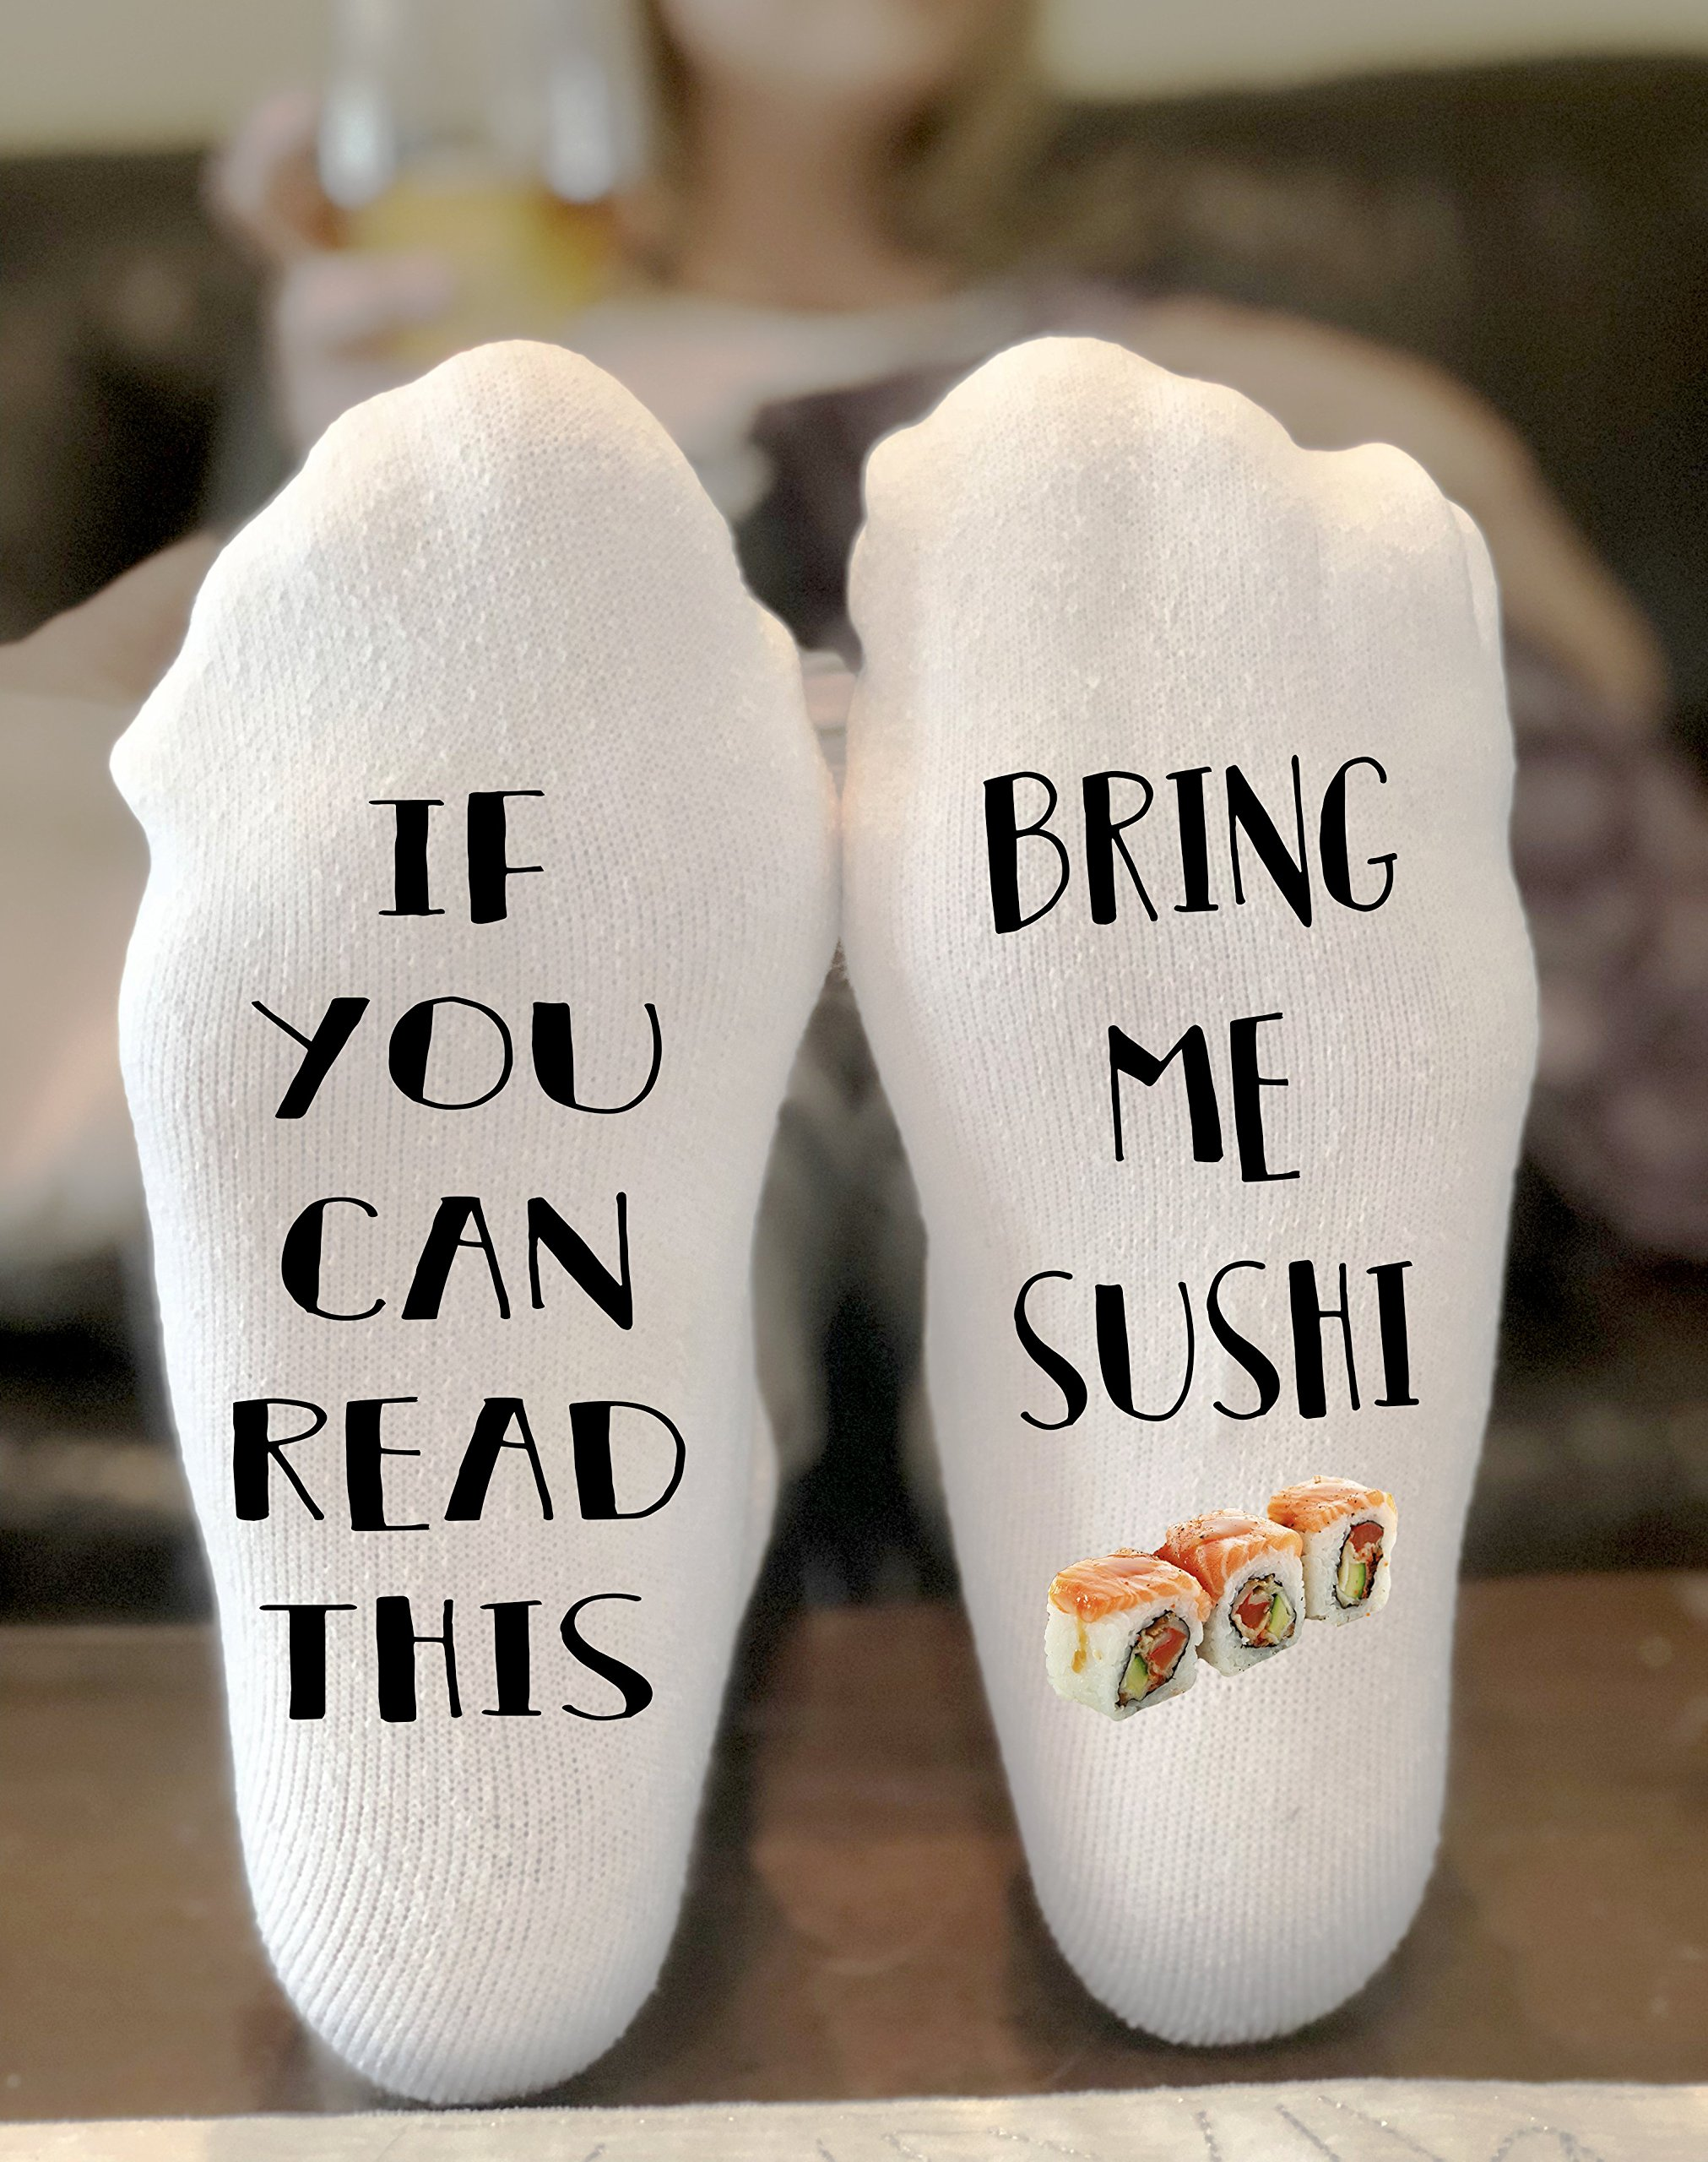 If You Can Read This Bring Me Sushi Novelty Funky Crew Socks Men Women Christmas Gifts Cotton Slipper Socks